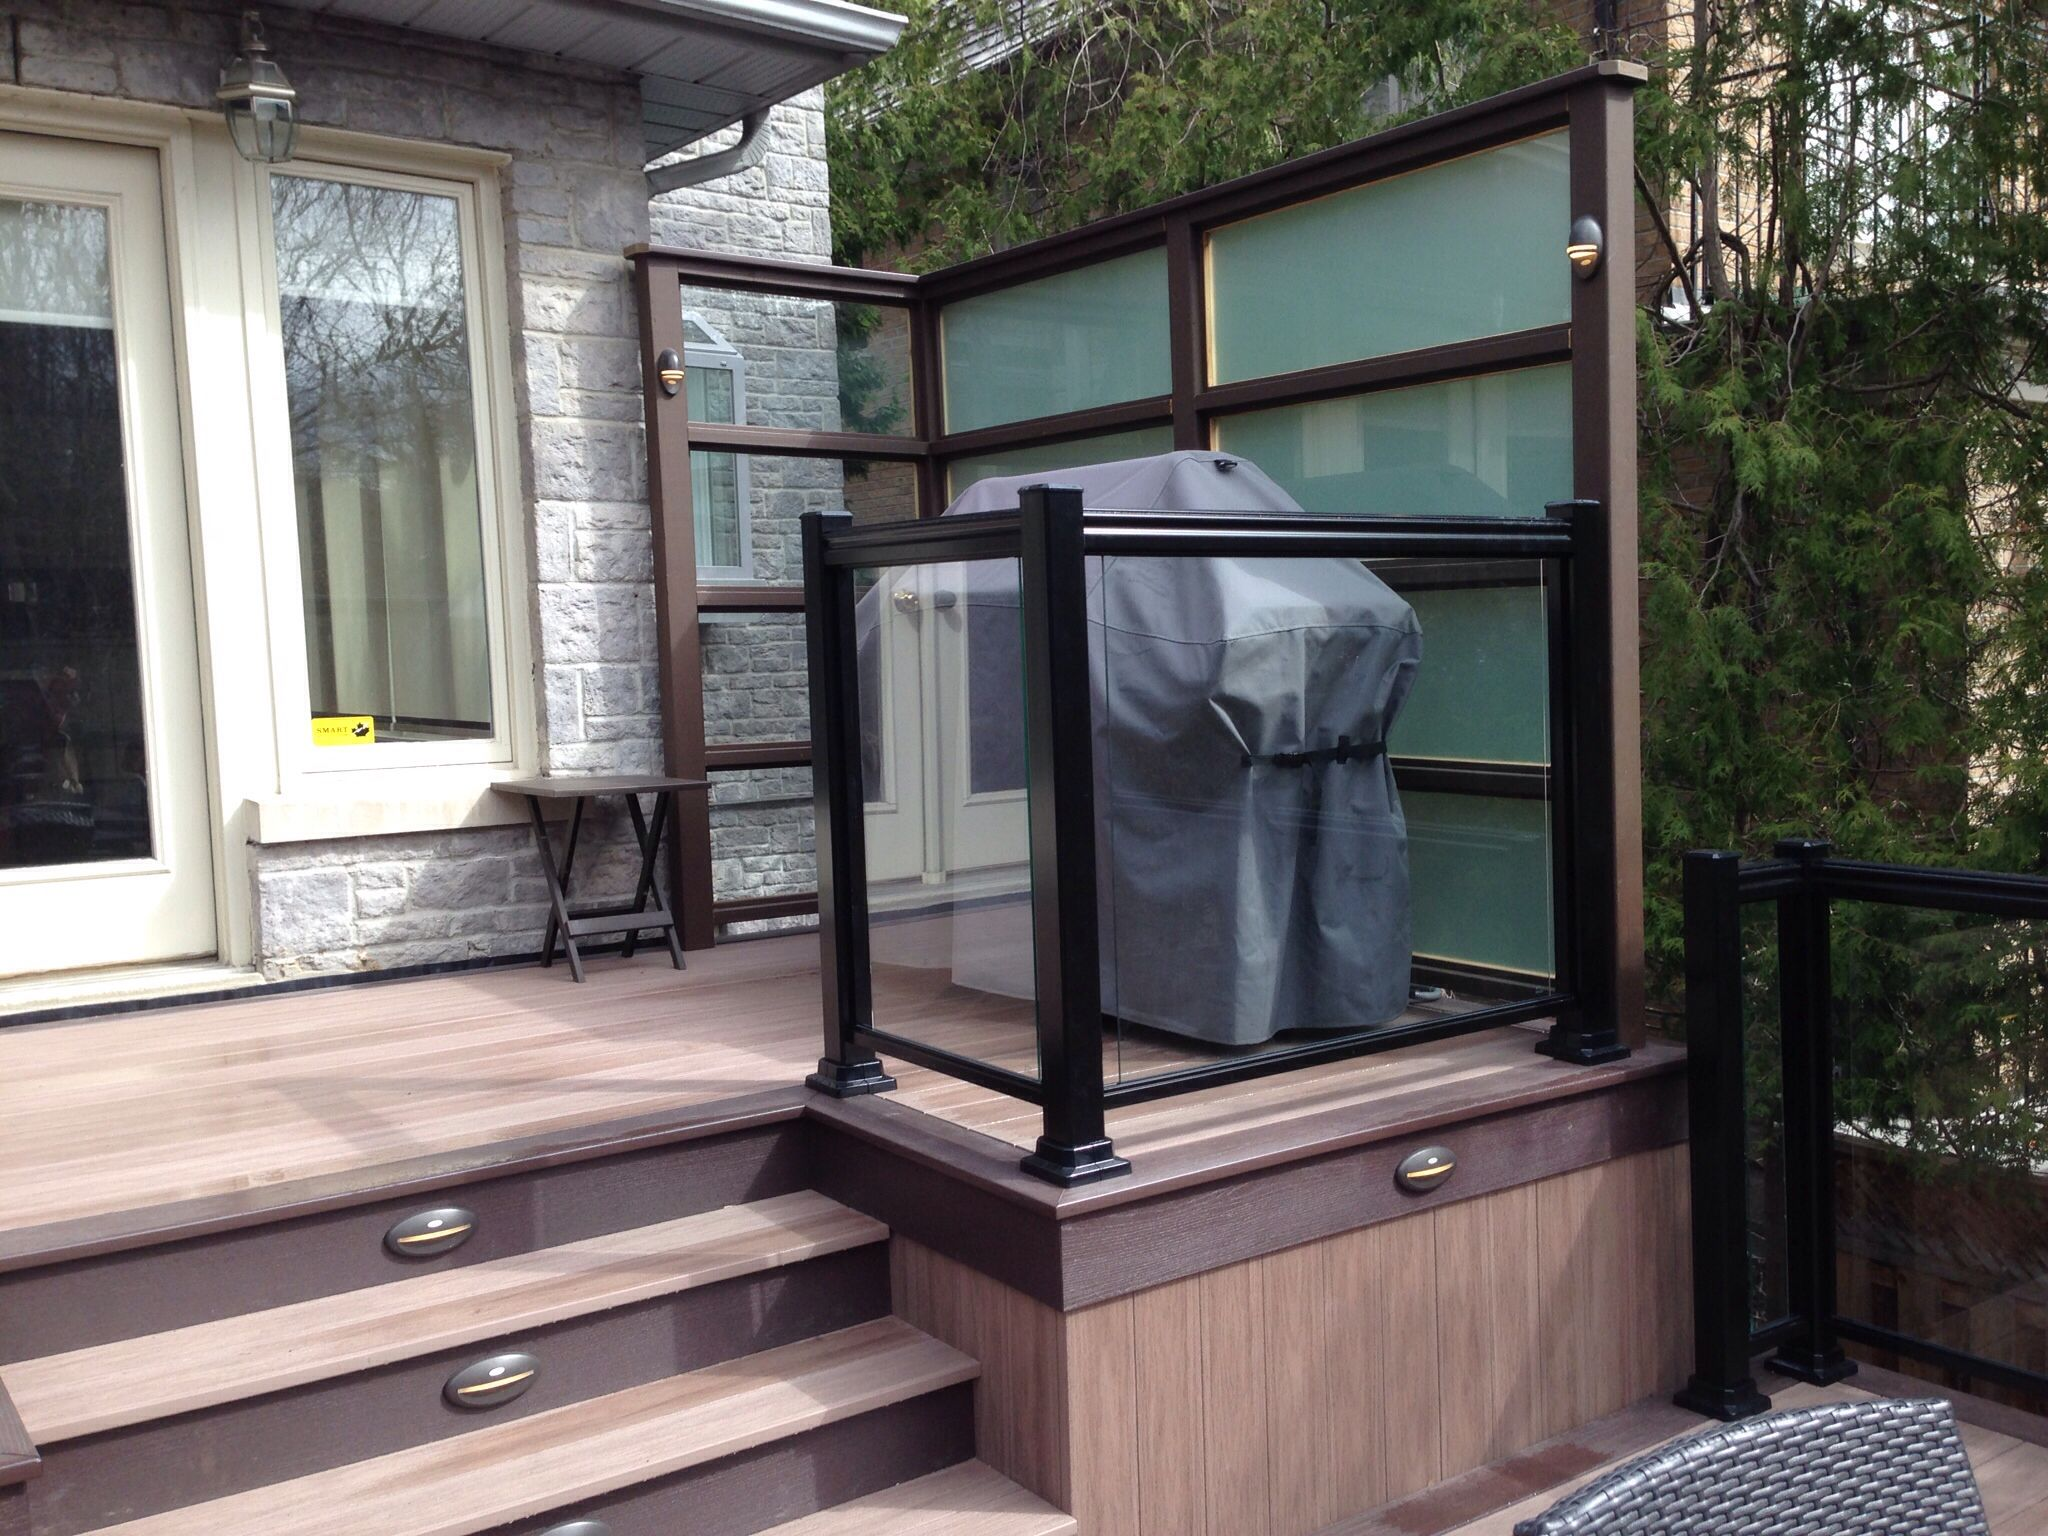 Deckstore Ca Custom Frosted Glass Privacy Screen Designed By Robert Hodichak